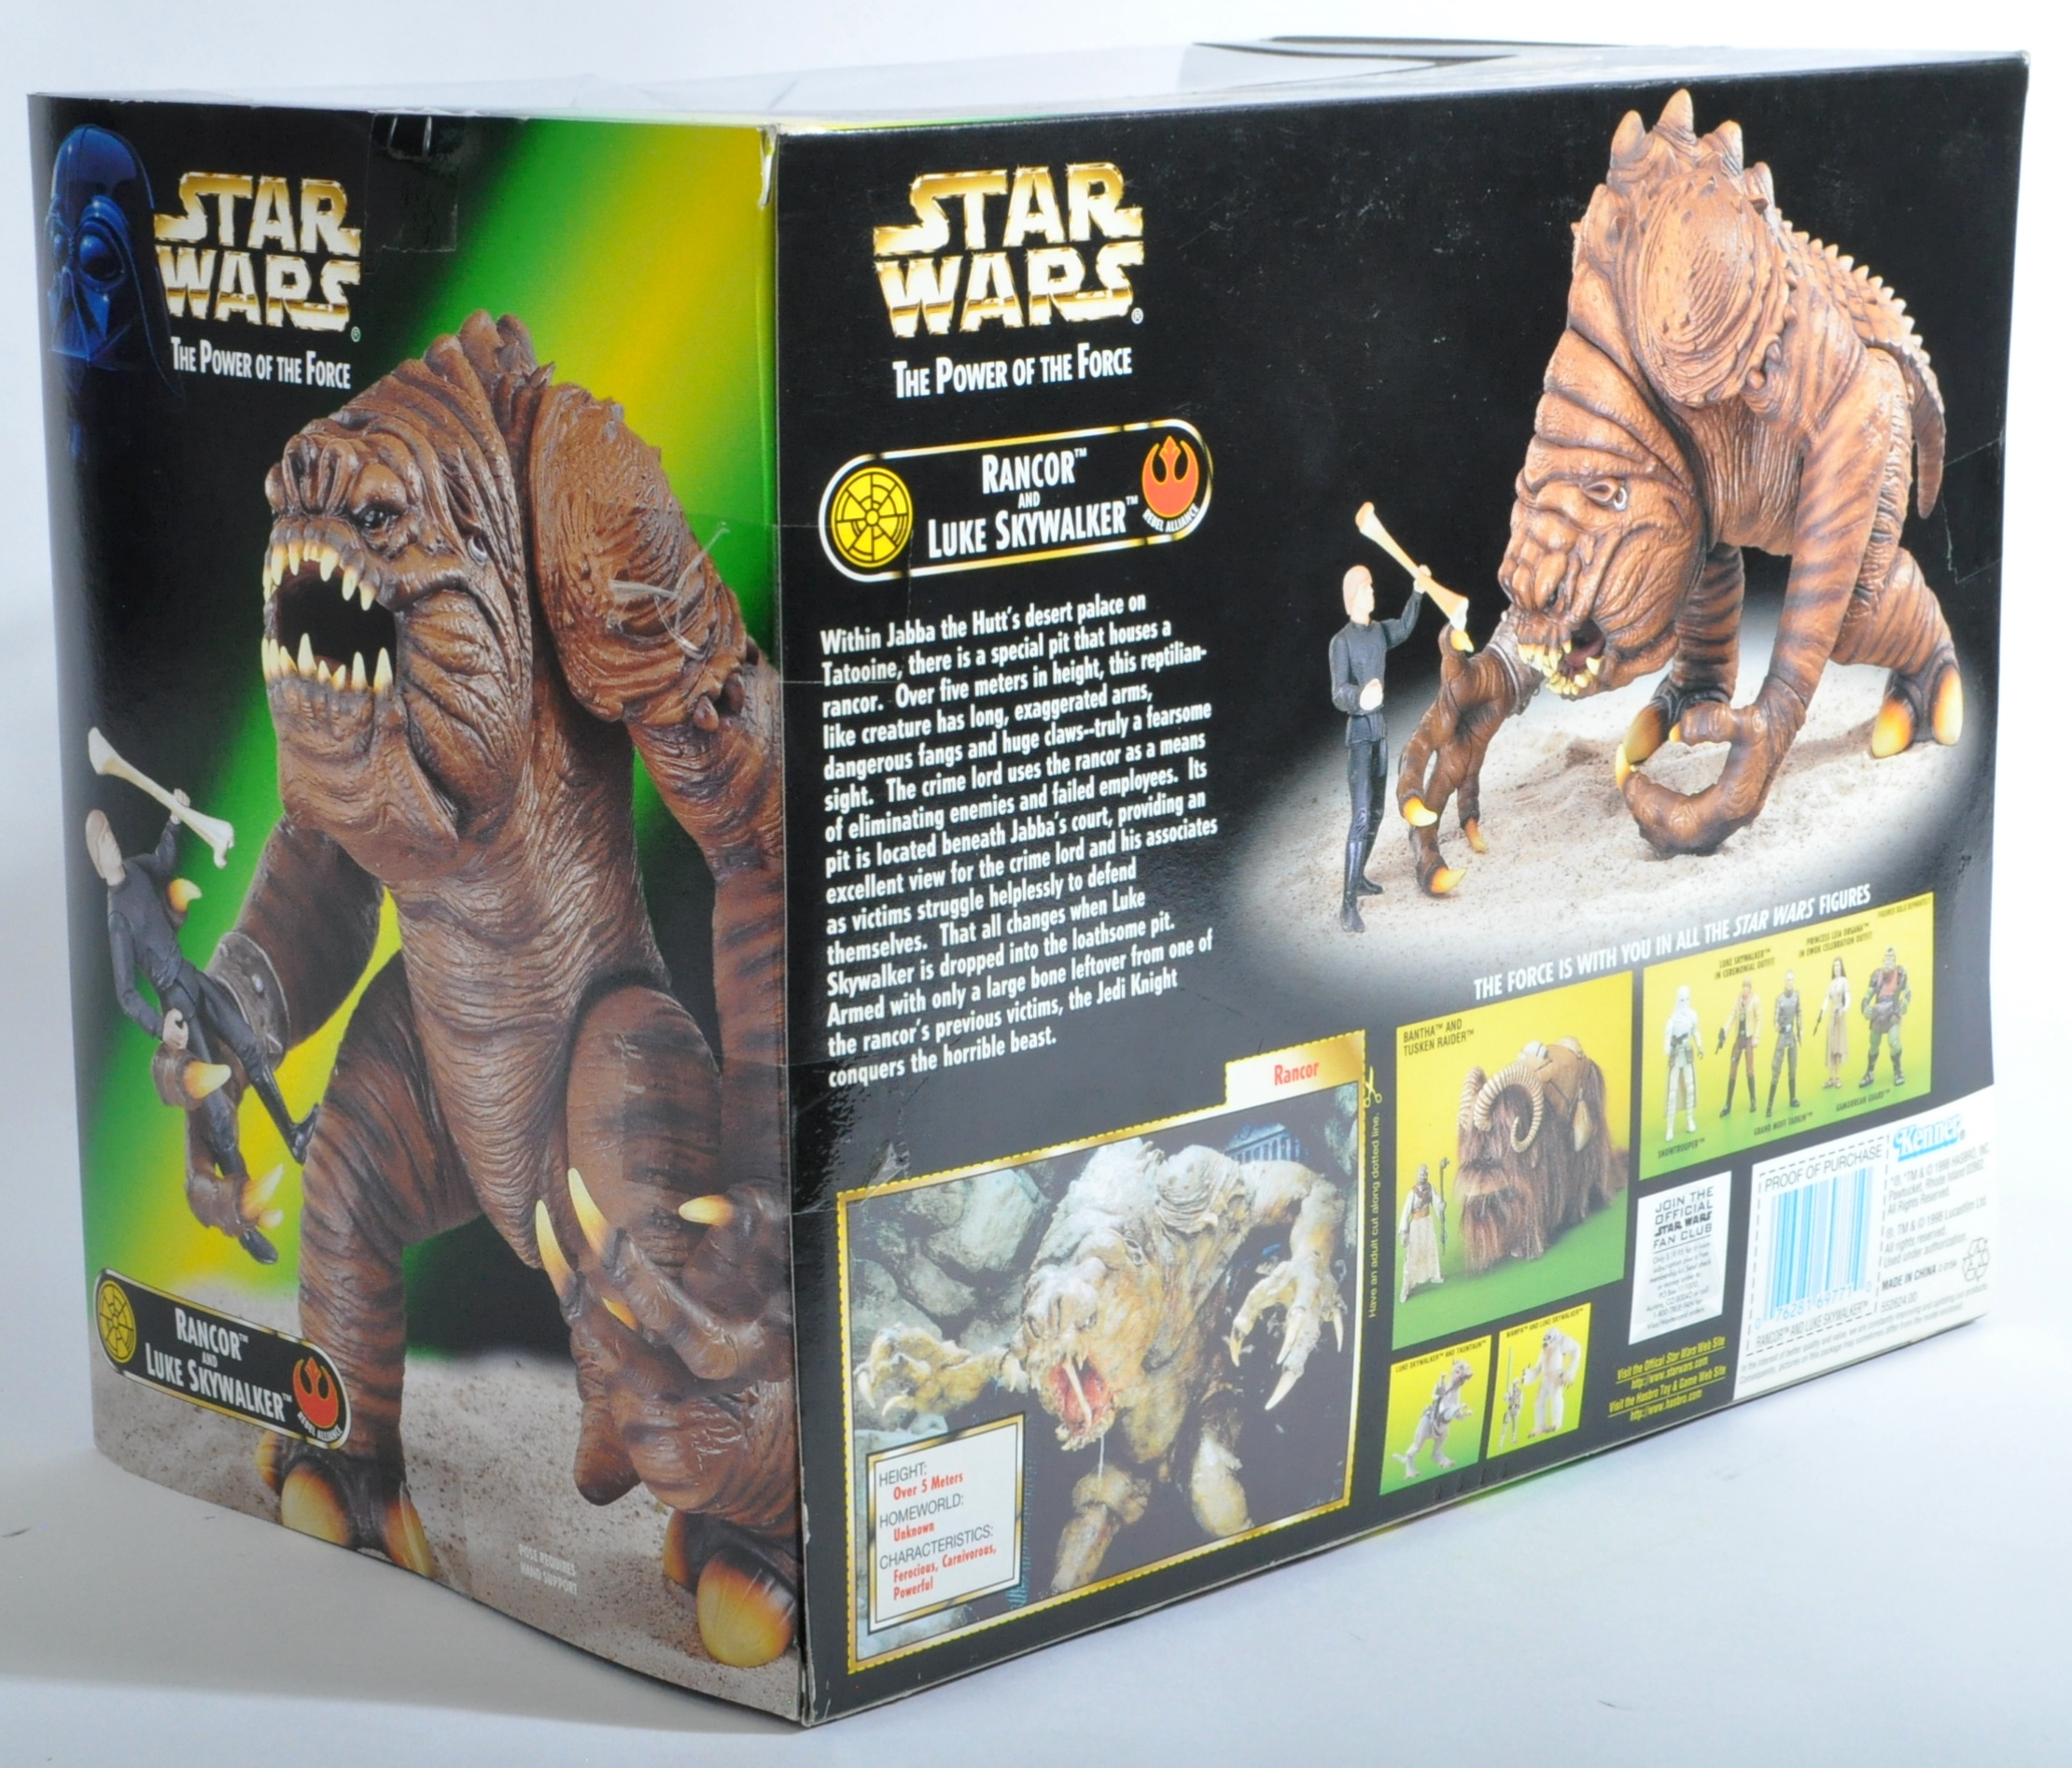 STAR WARS - POWER OF THE FORCE SEALED ACTION FIGURE PLAYSET - Image 2 of 3